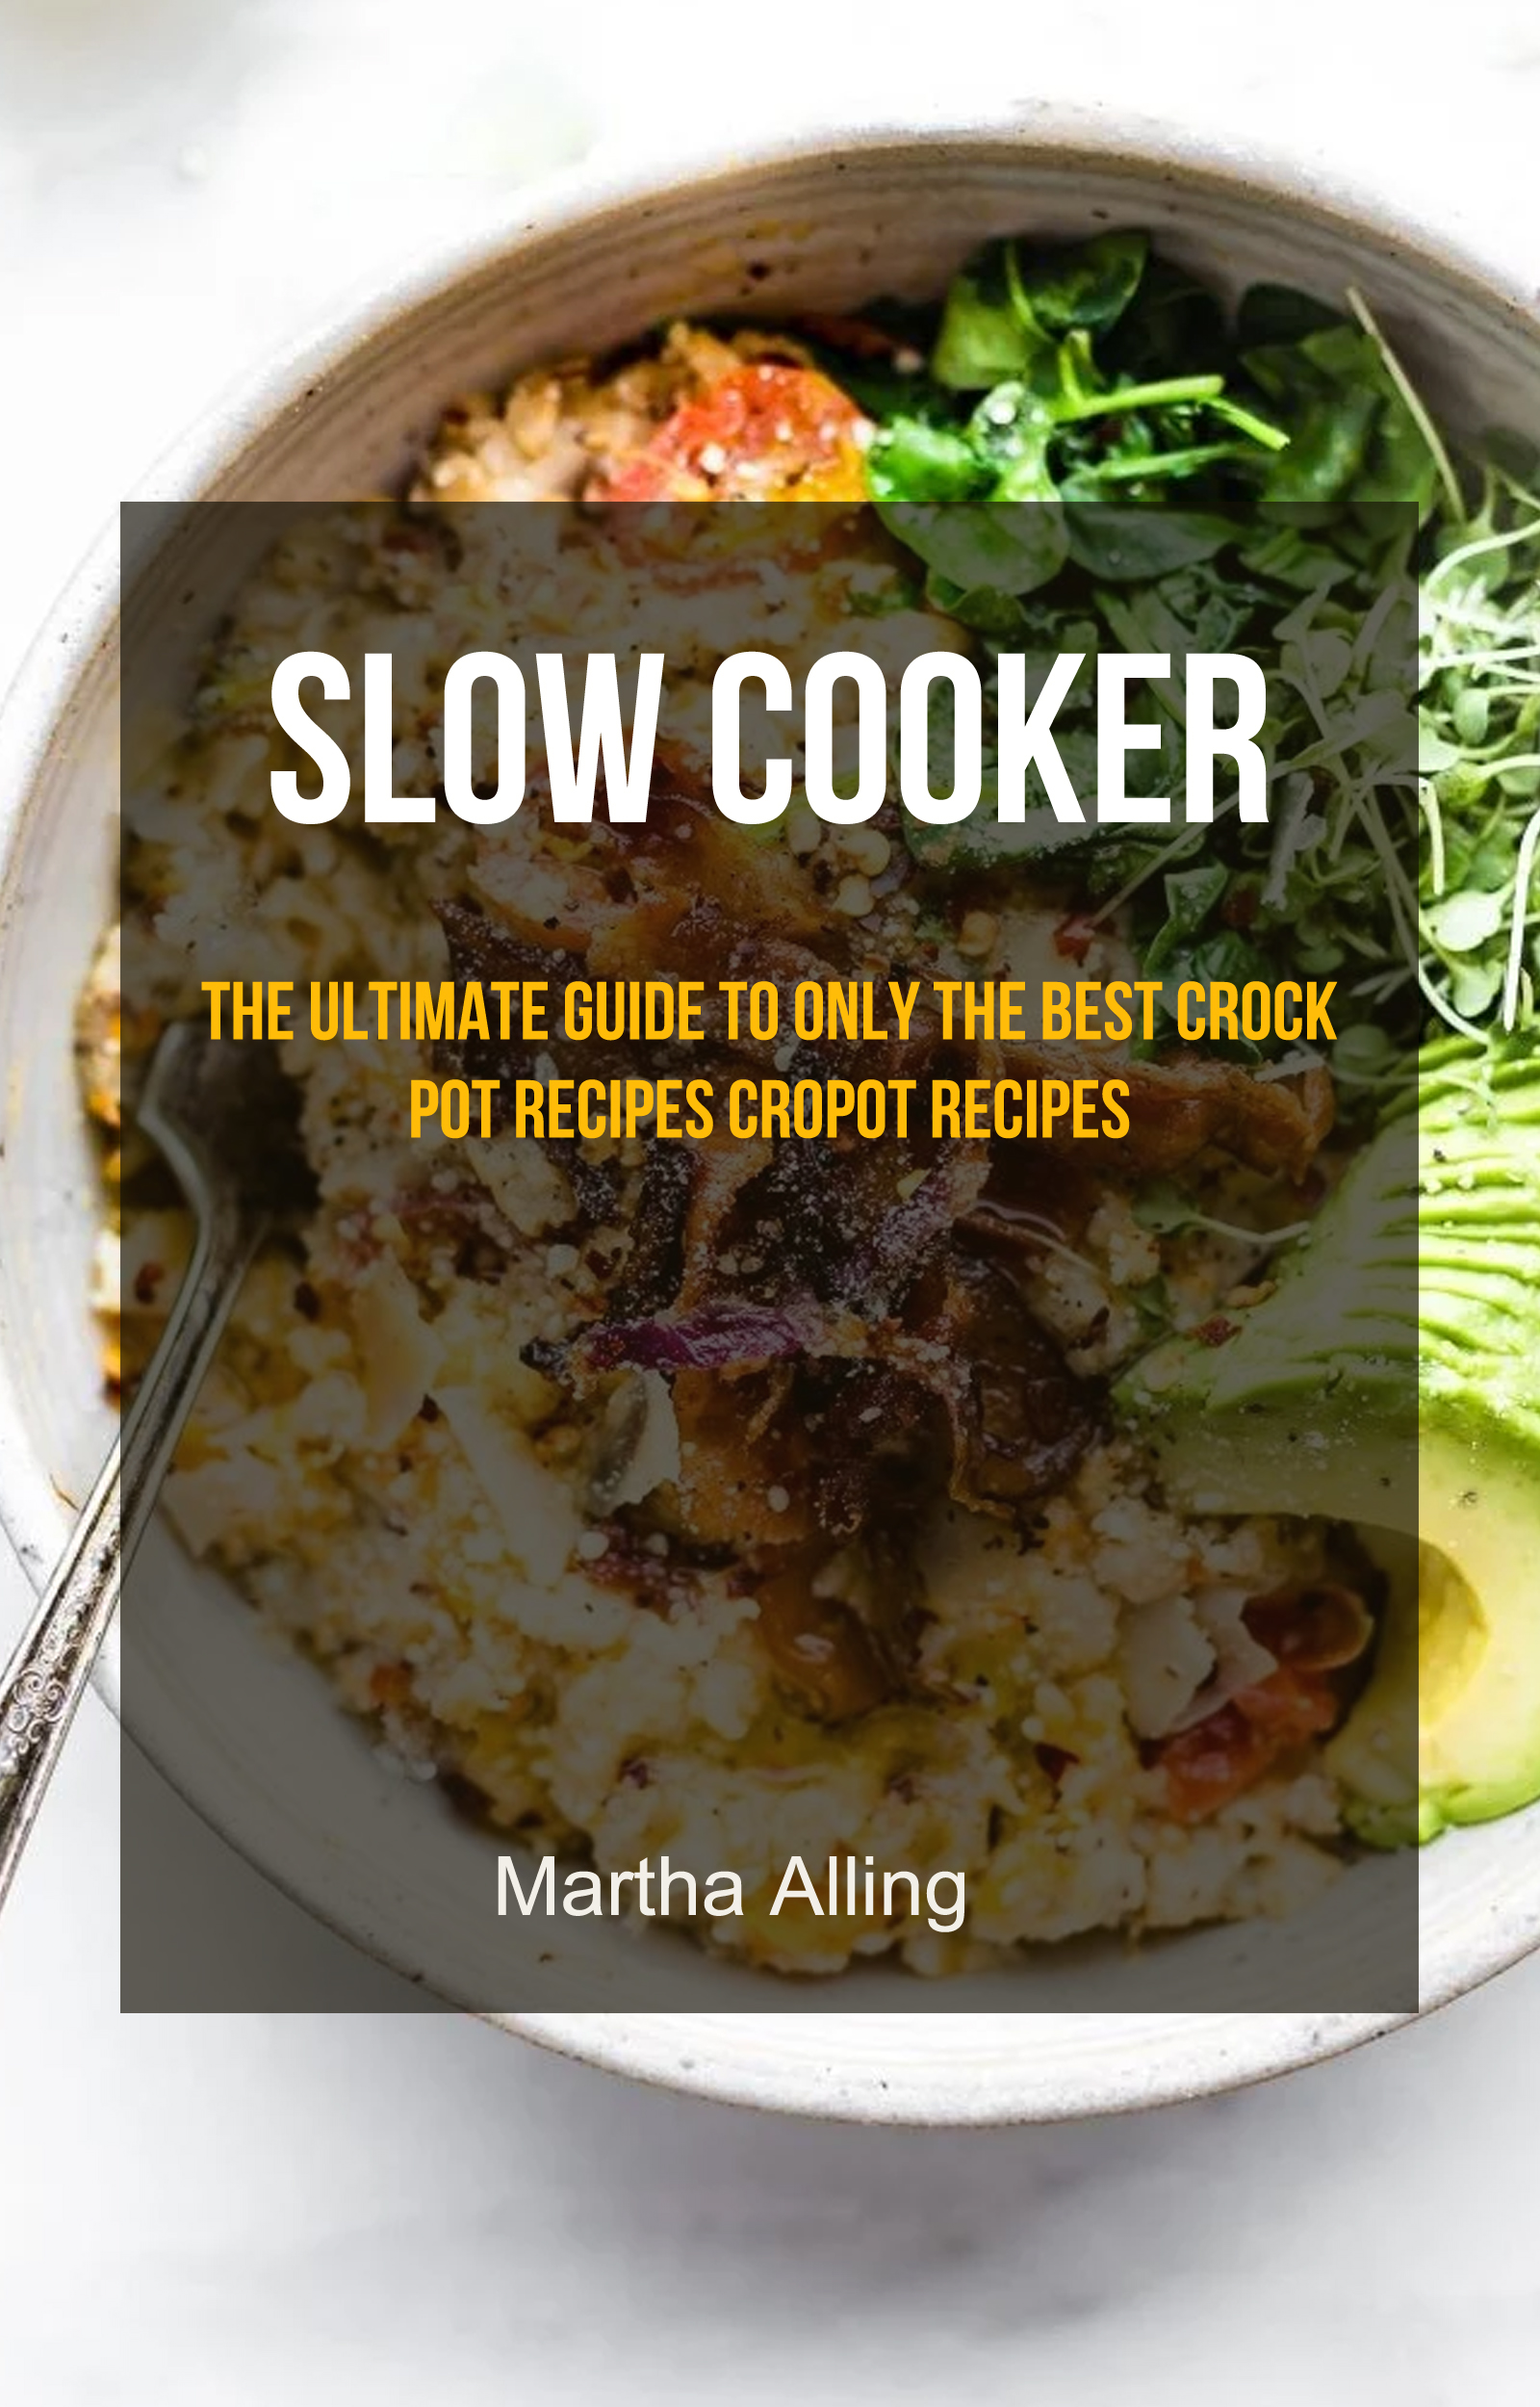 Slow cooker : the ultimate guide to only the best crock pot recipes (cropot recipes)